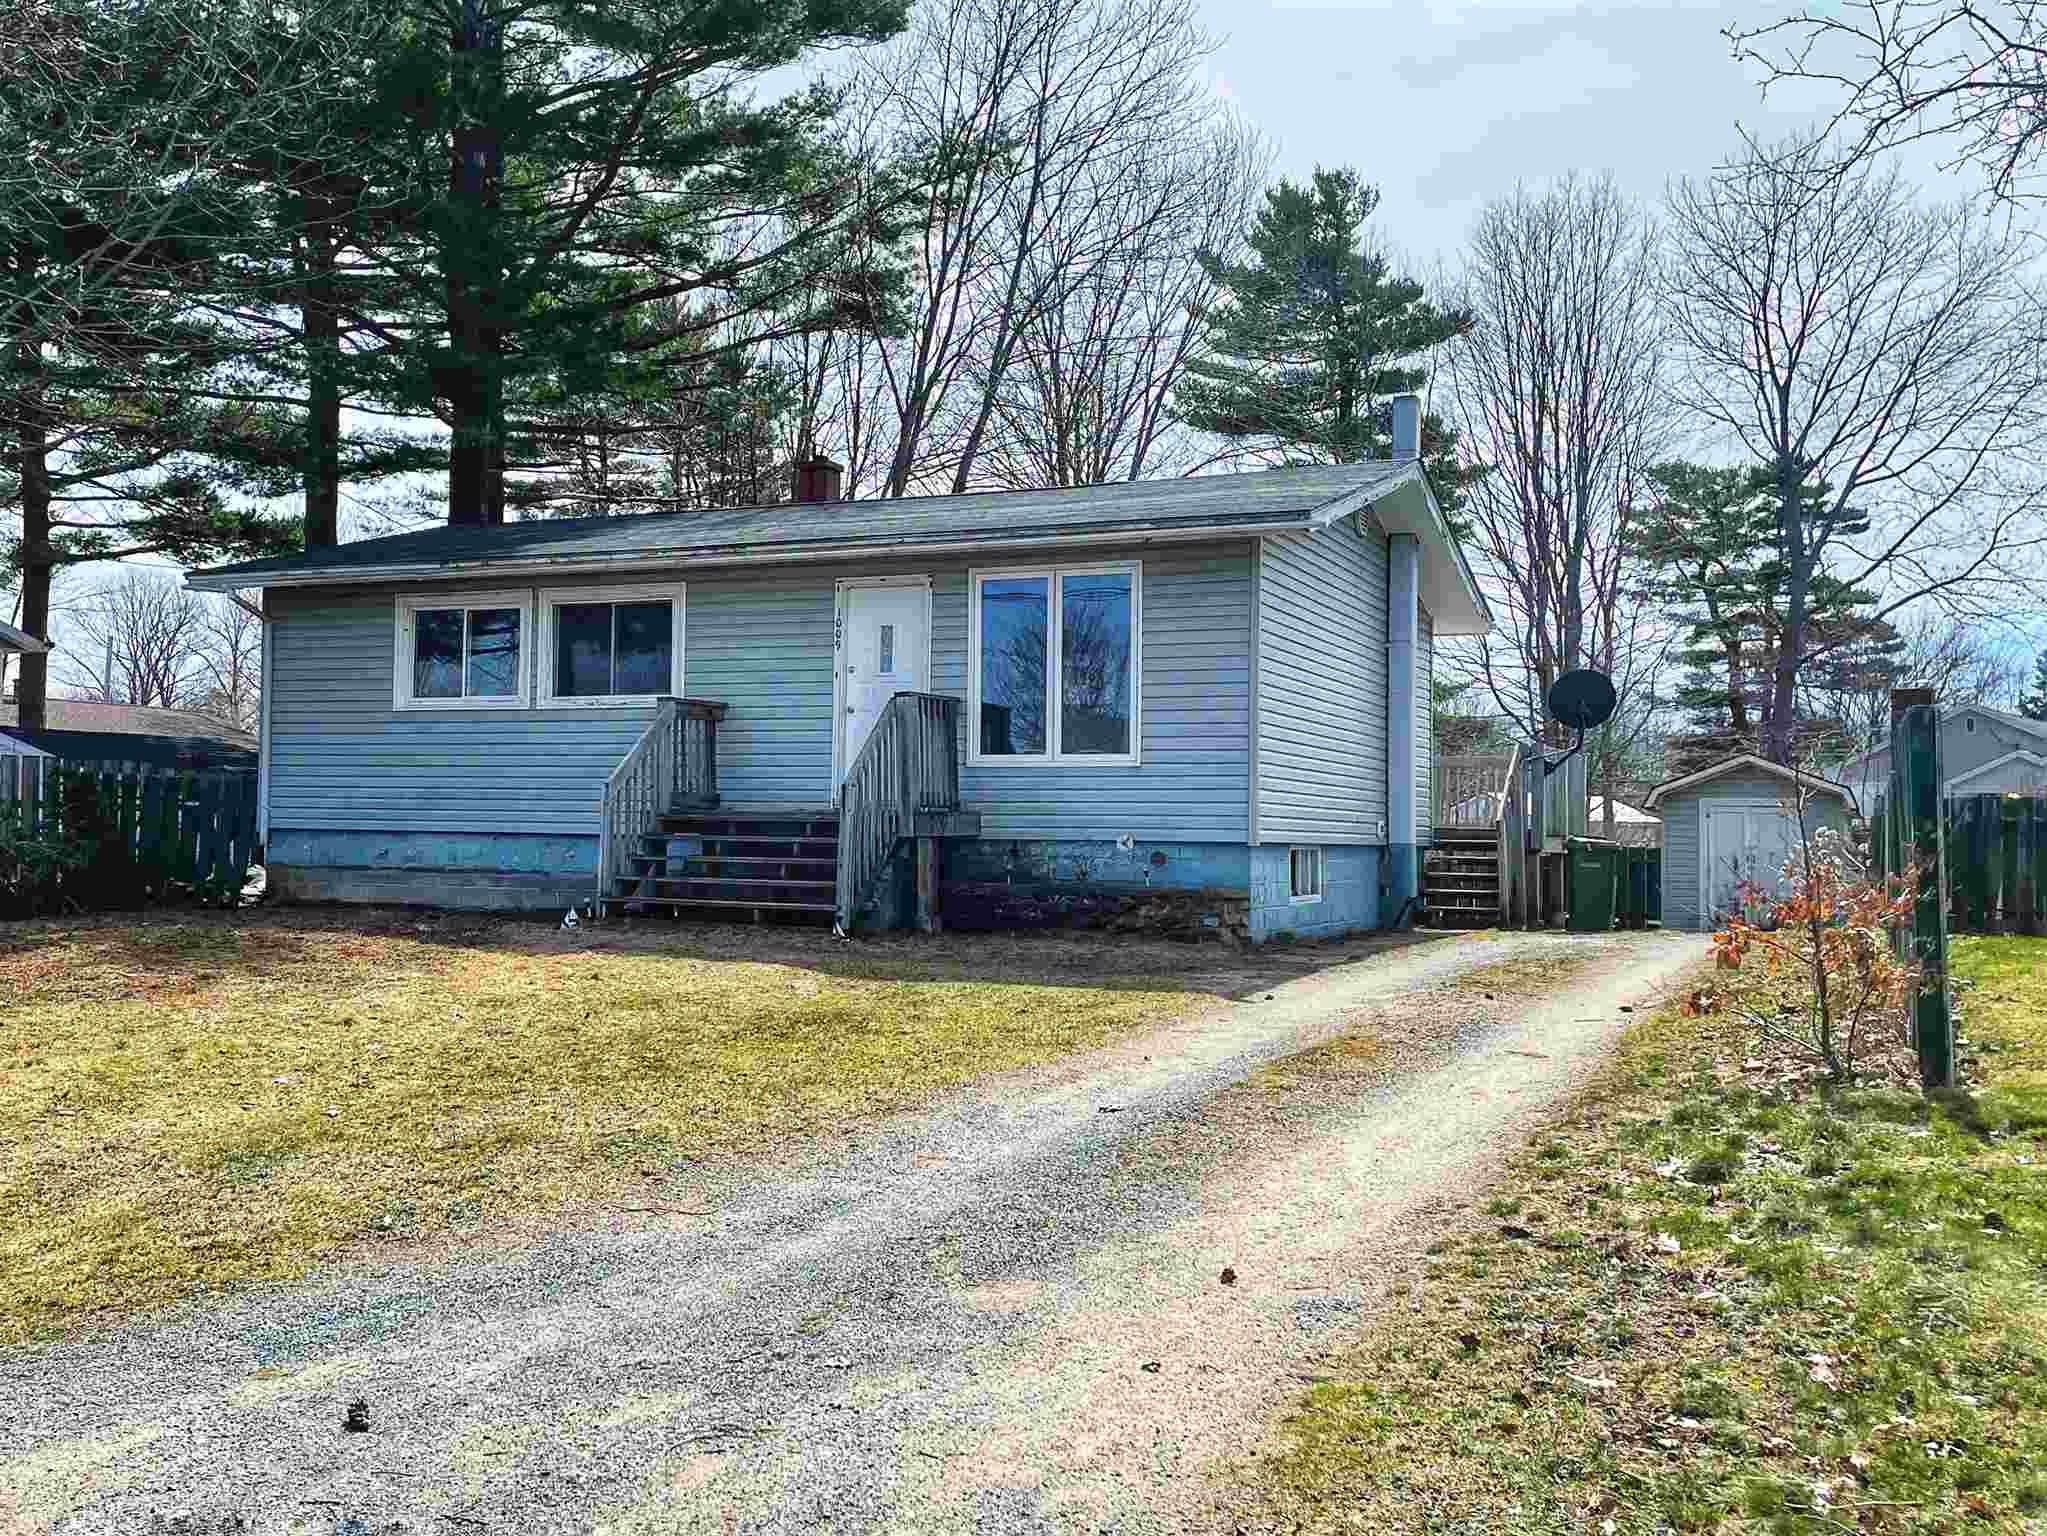 Main Photo: 1009 Kenwood Avenue in Greenwood: 404-Kings County Residential for sale (Annapolis Valley)  : MLS®# 202104592